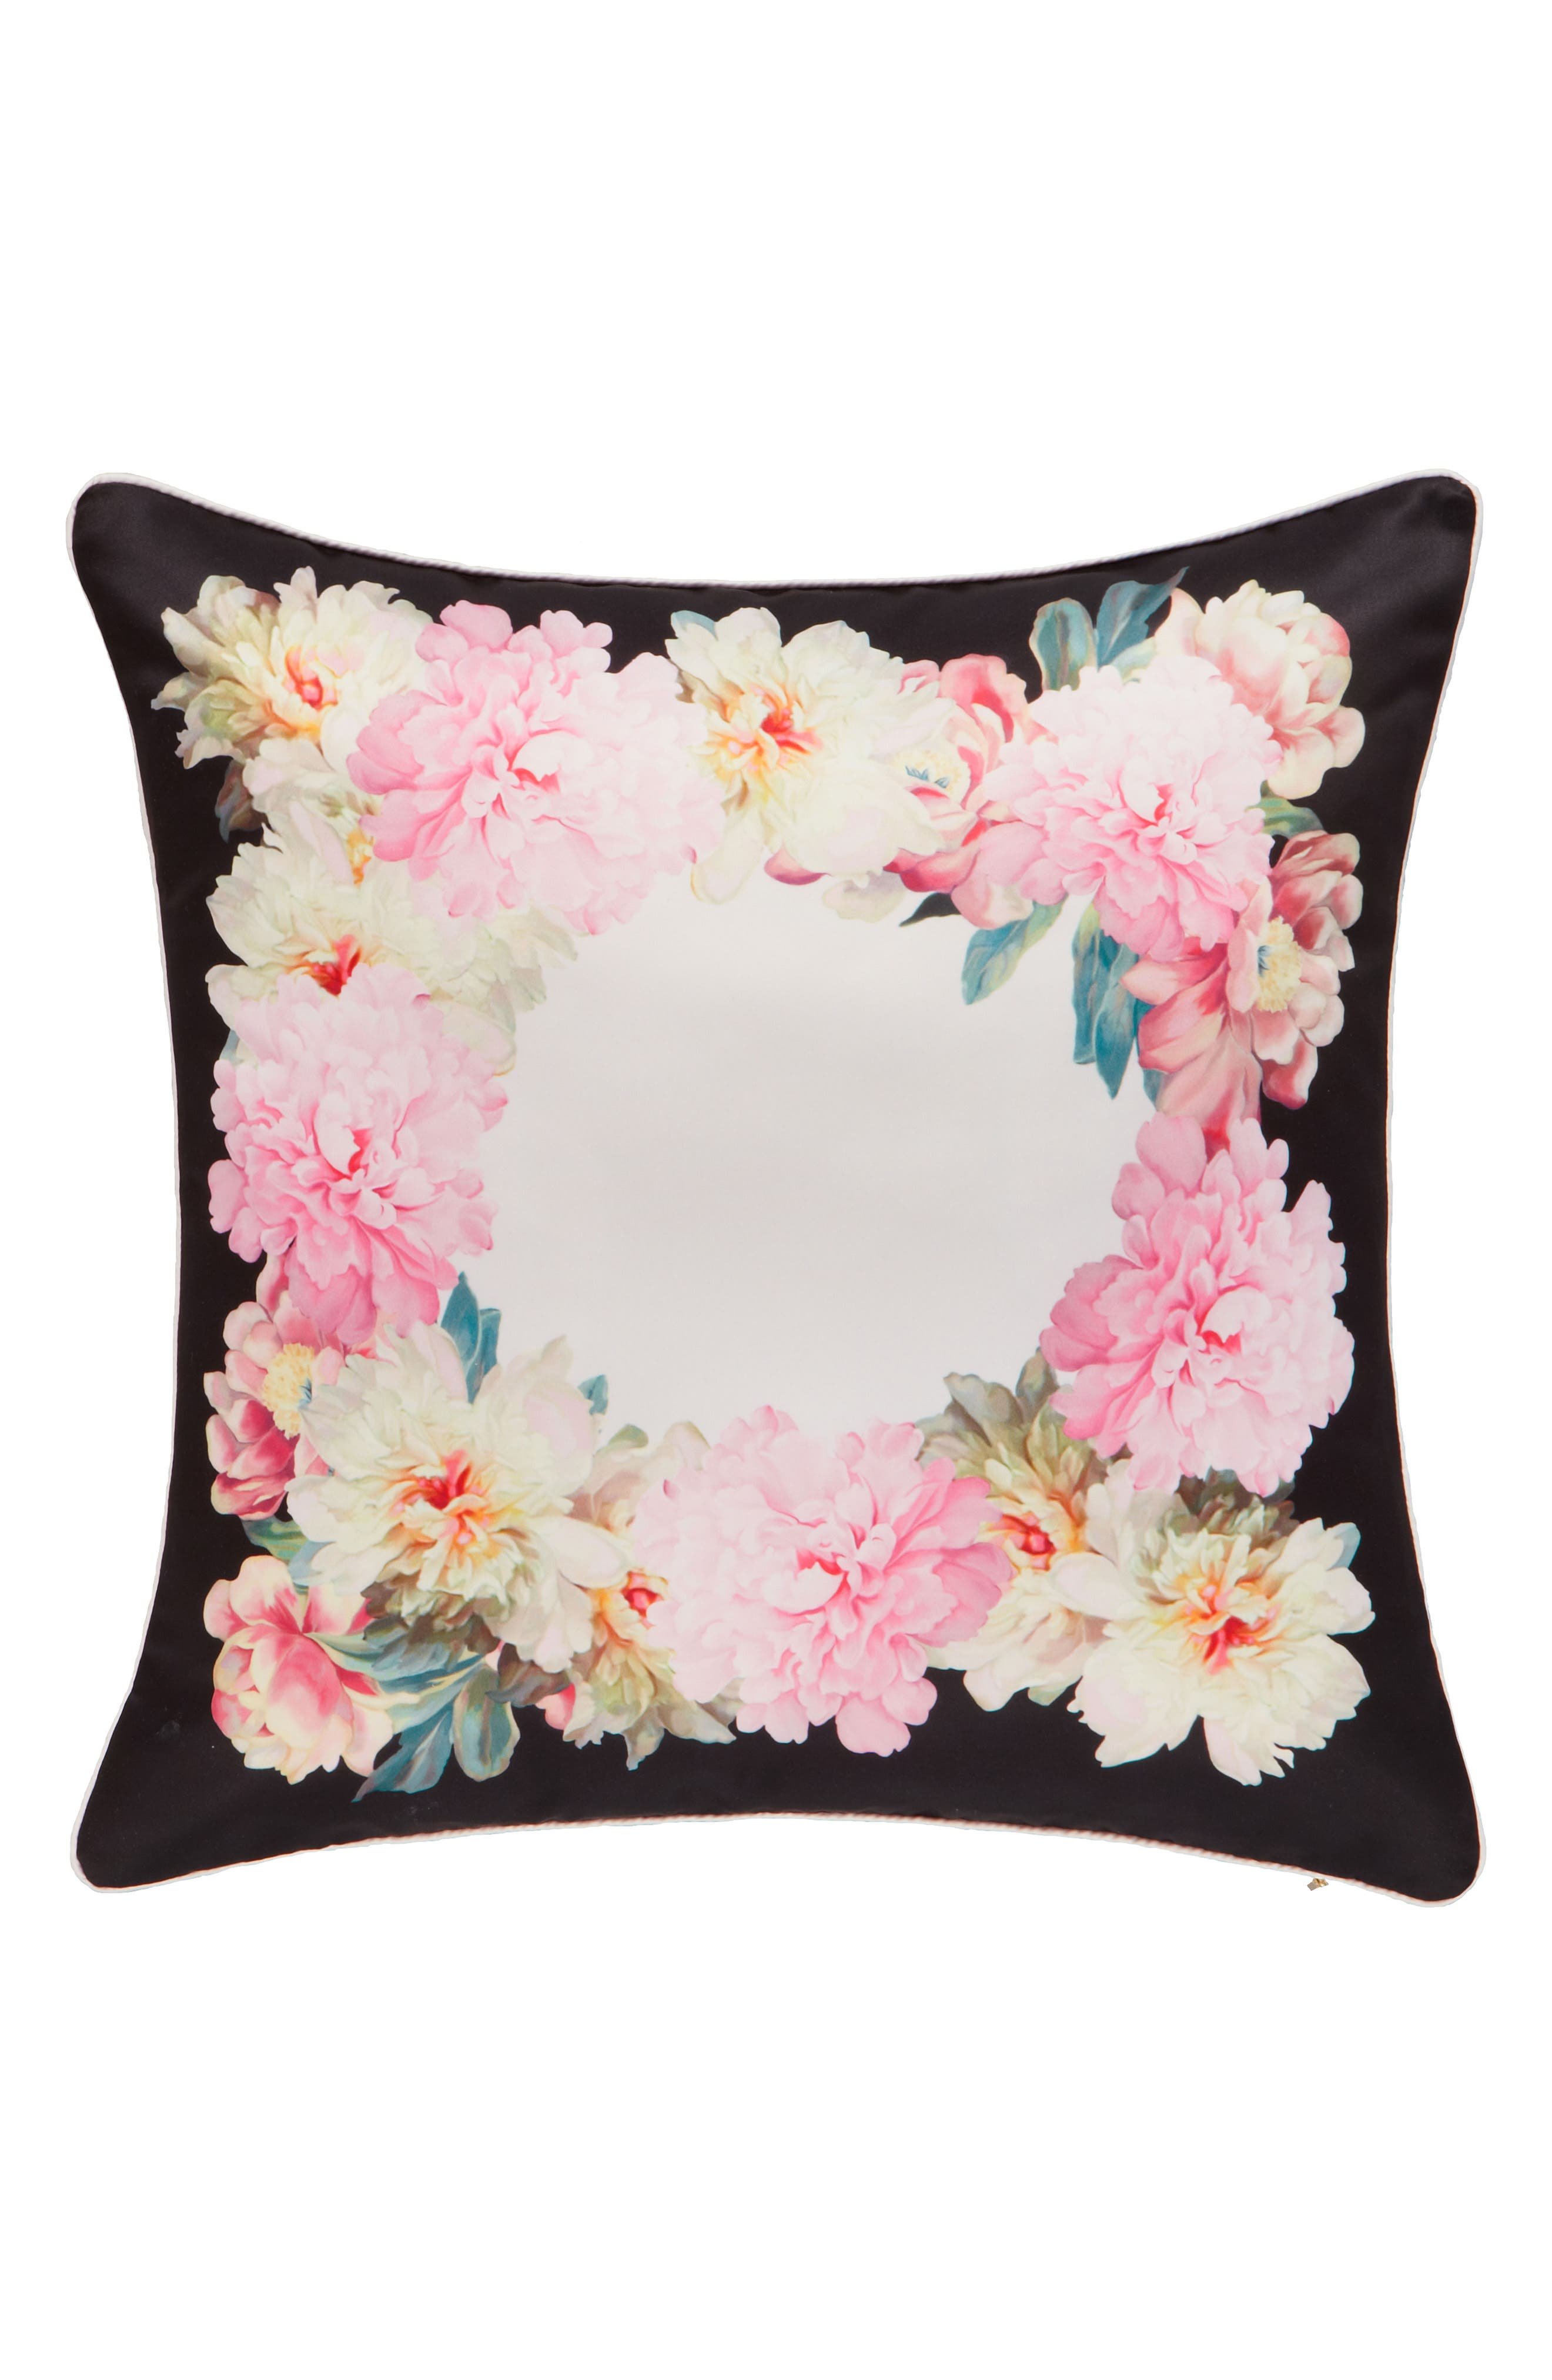 Painted Posie Accent Pillow,                         Main,                         color, Pink/ Multi